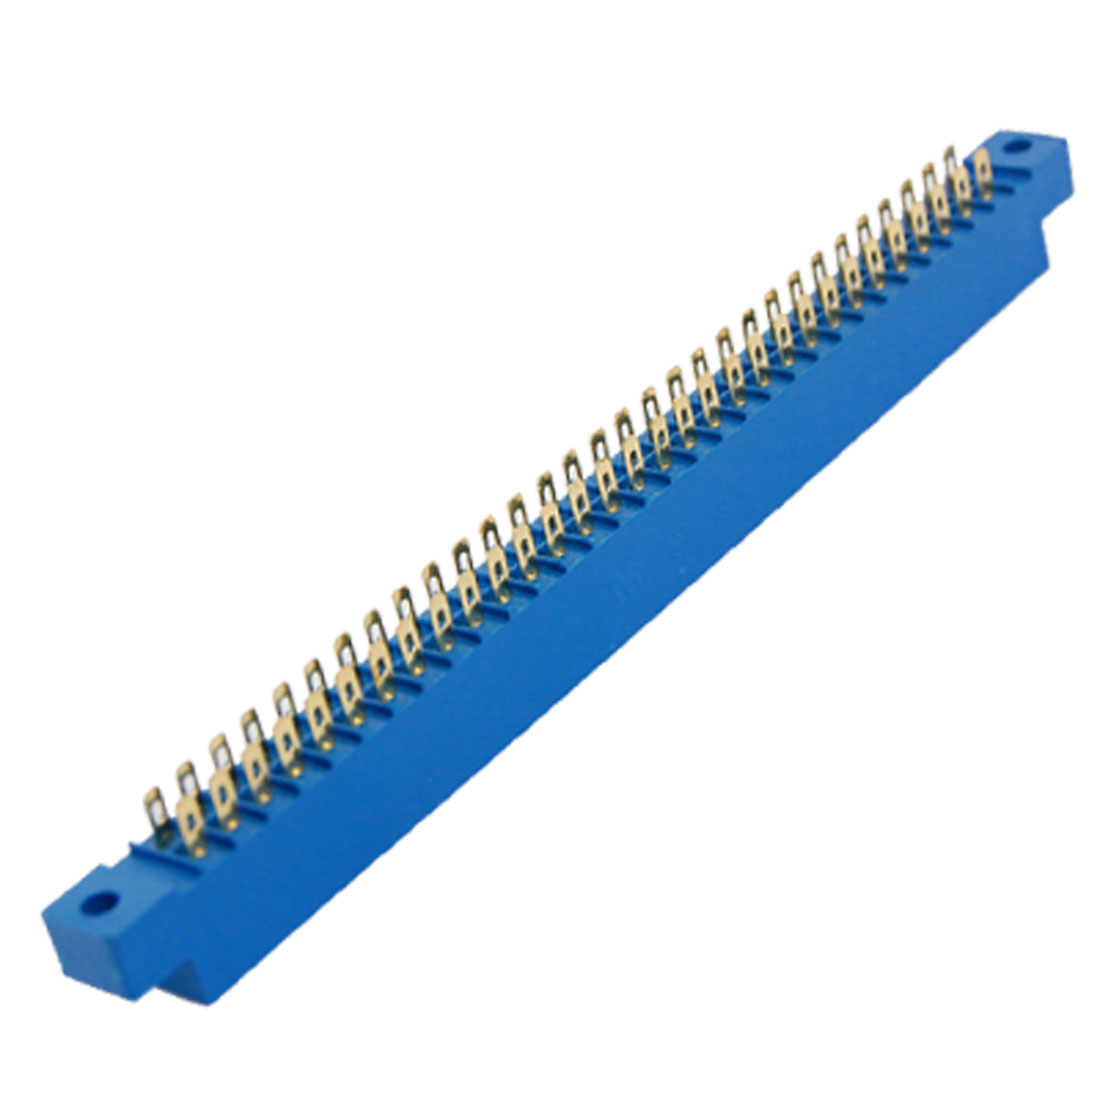 805 Series 3.96mm Pitch 62P Card Edge Connector PCB Solder Socket